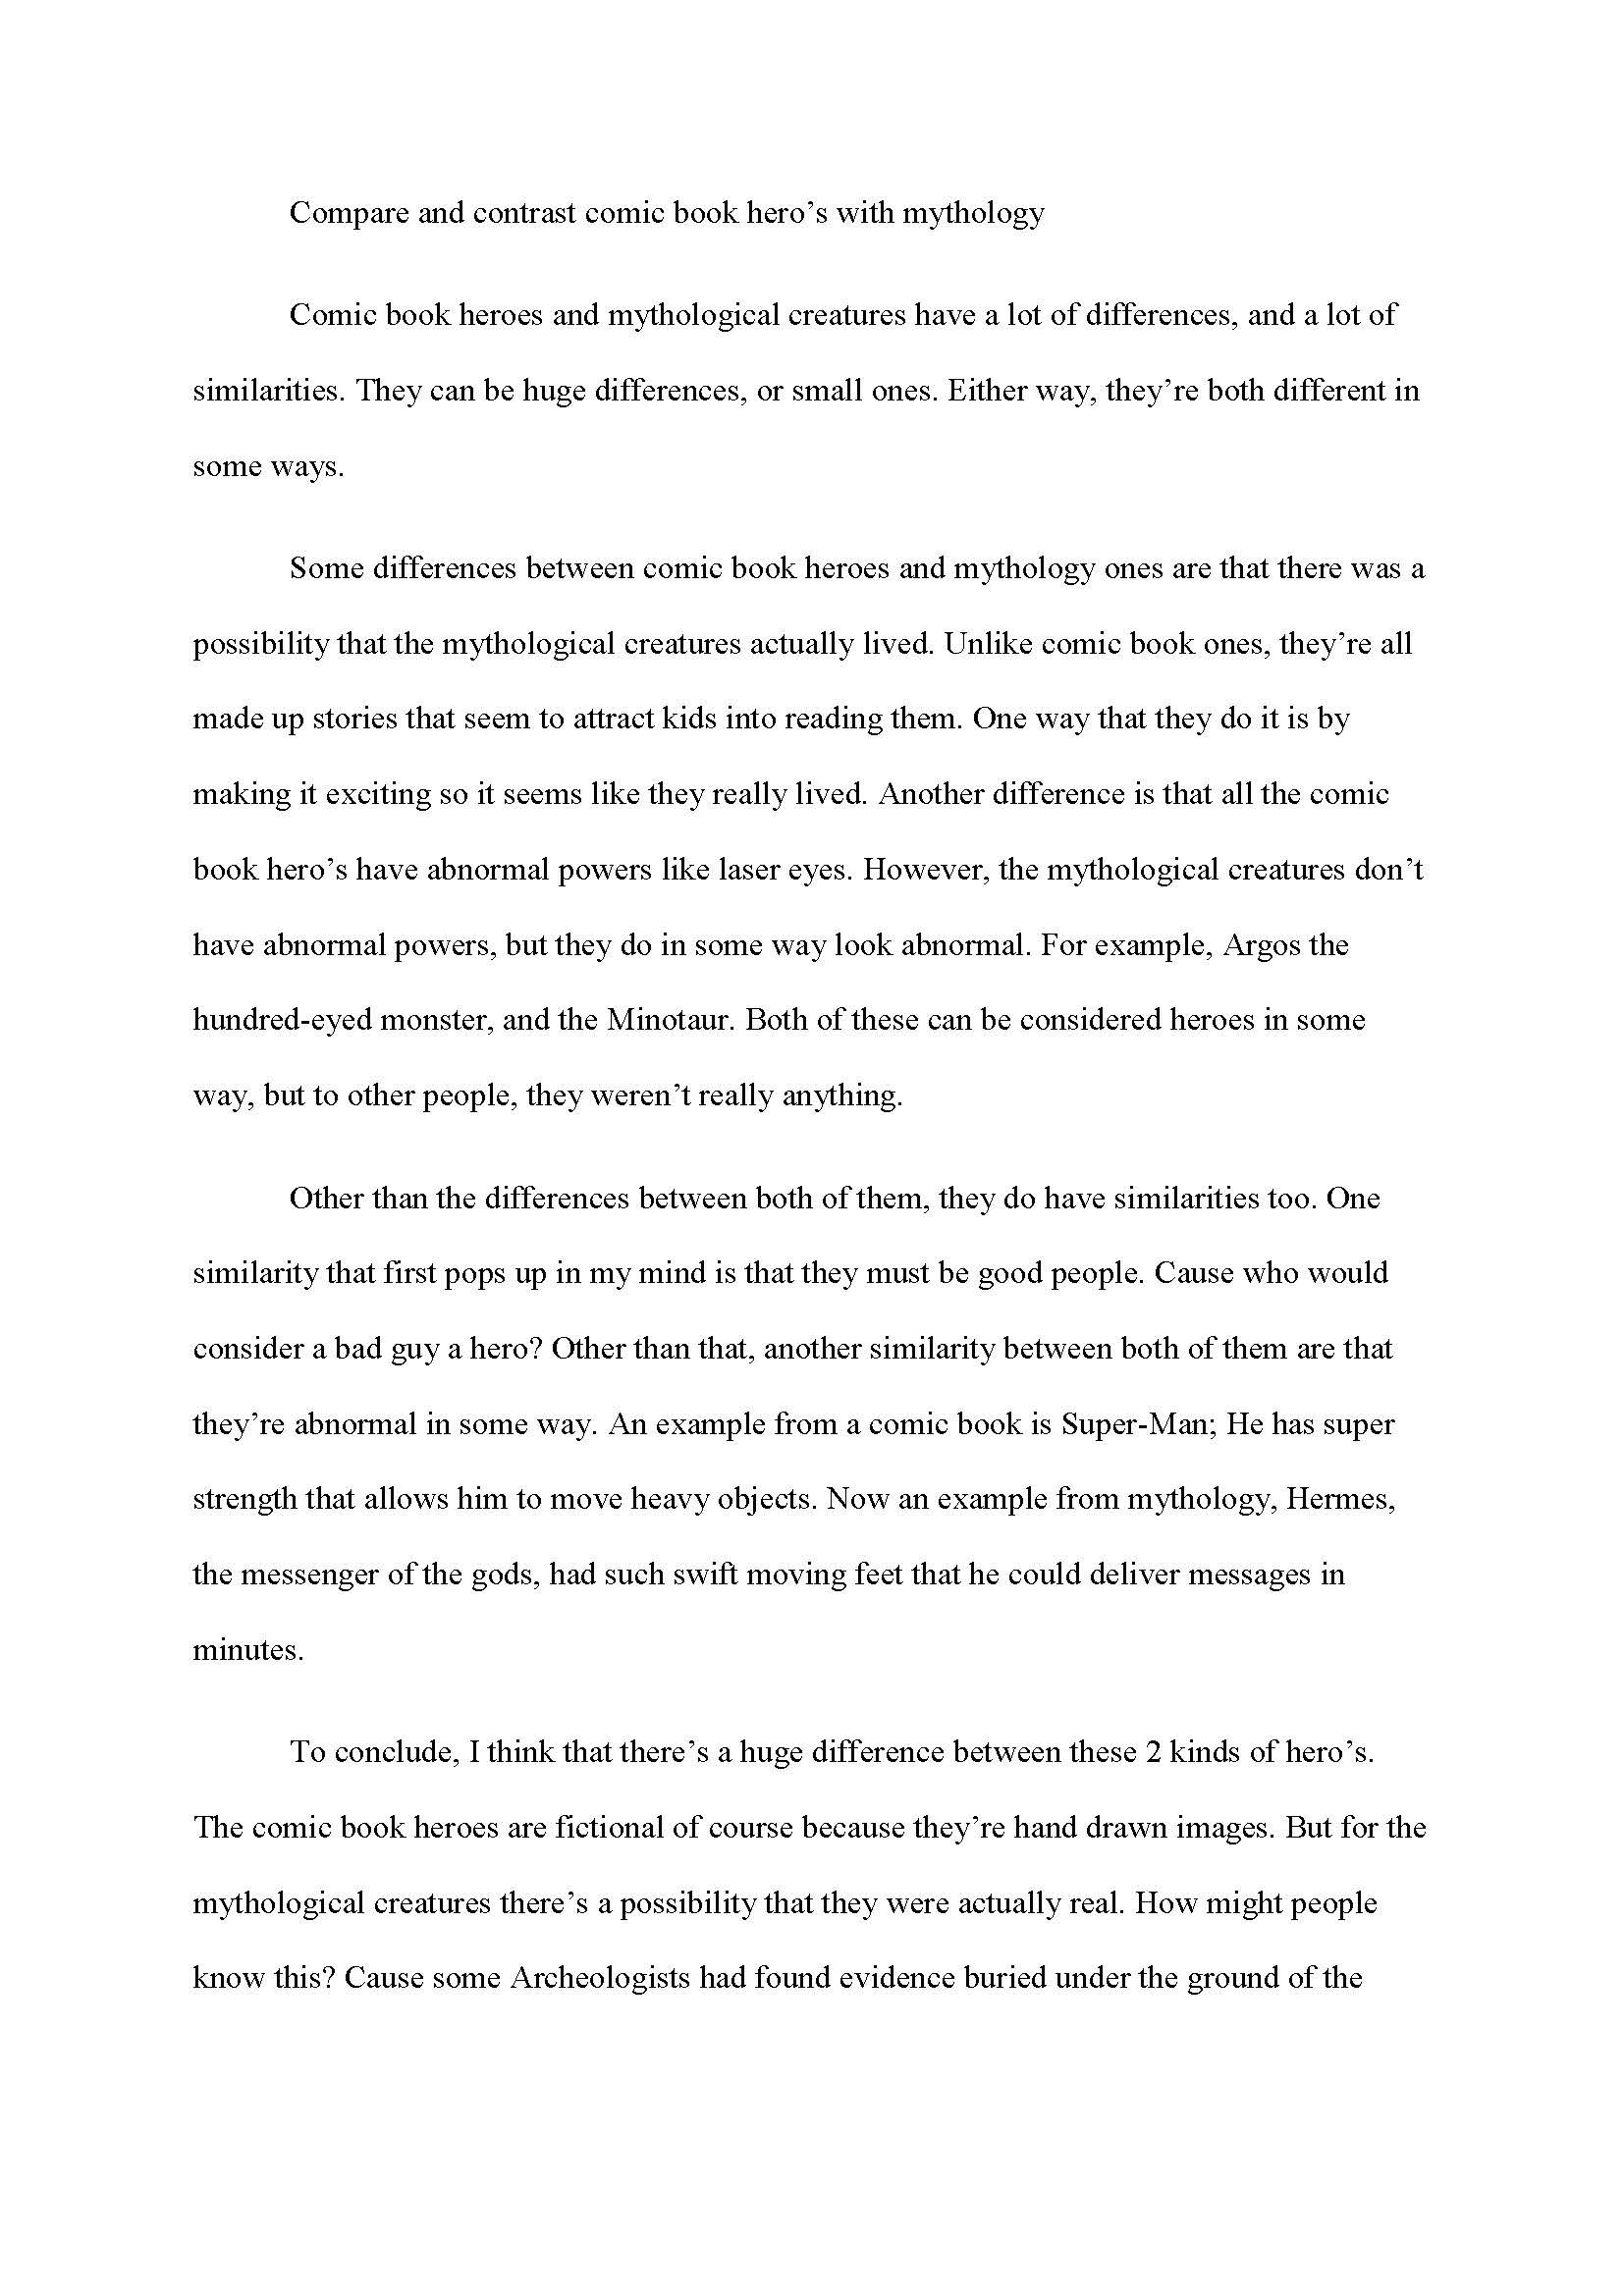 Full Size of Essay Examples Compare And Contrast Social Issues Changer Conclusion Website That Writes